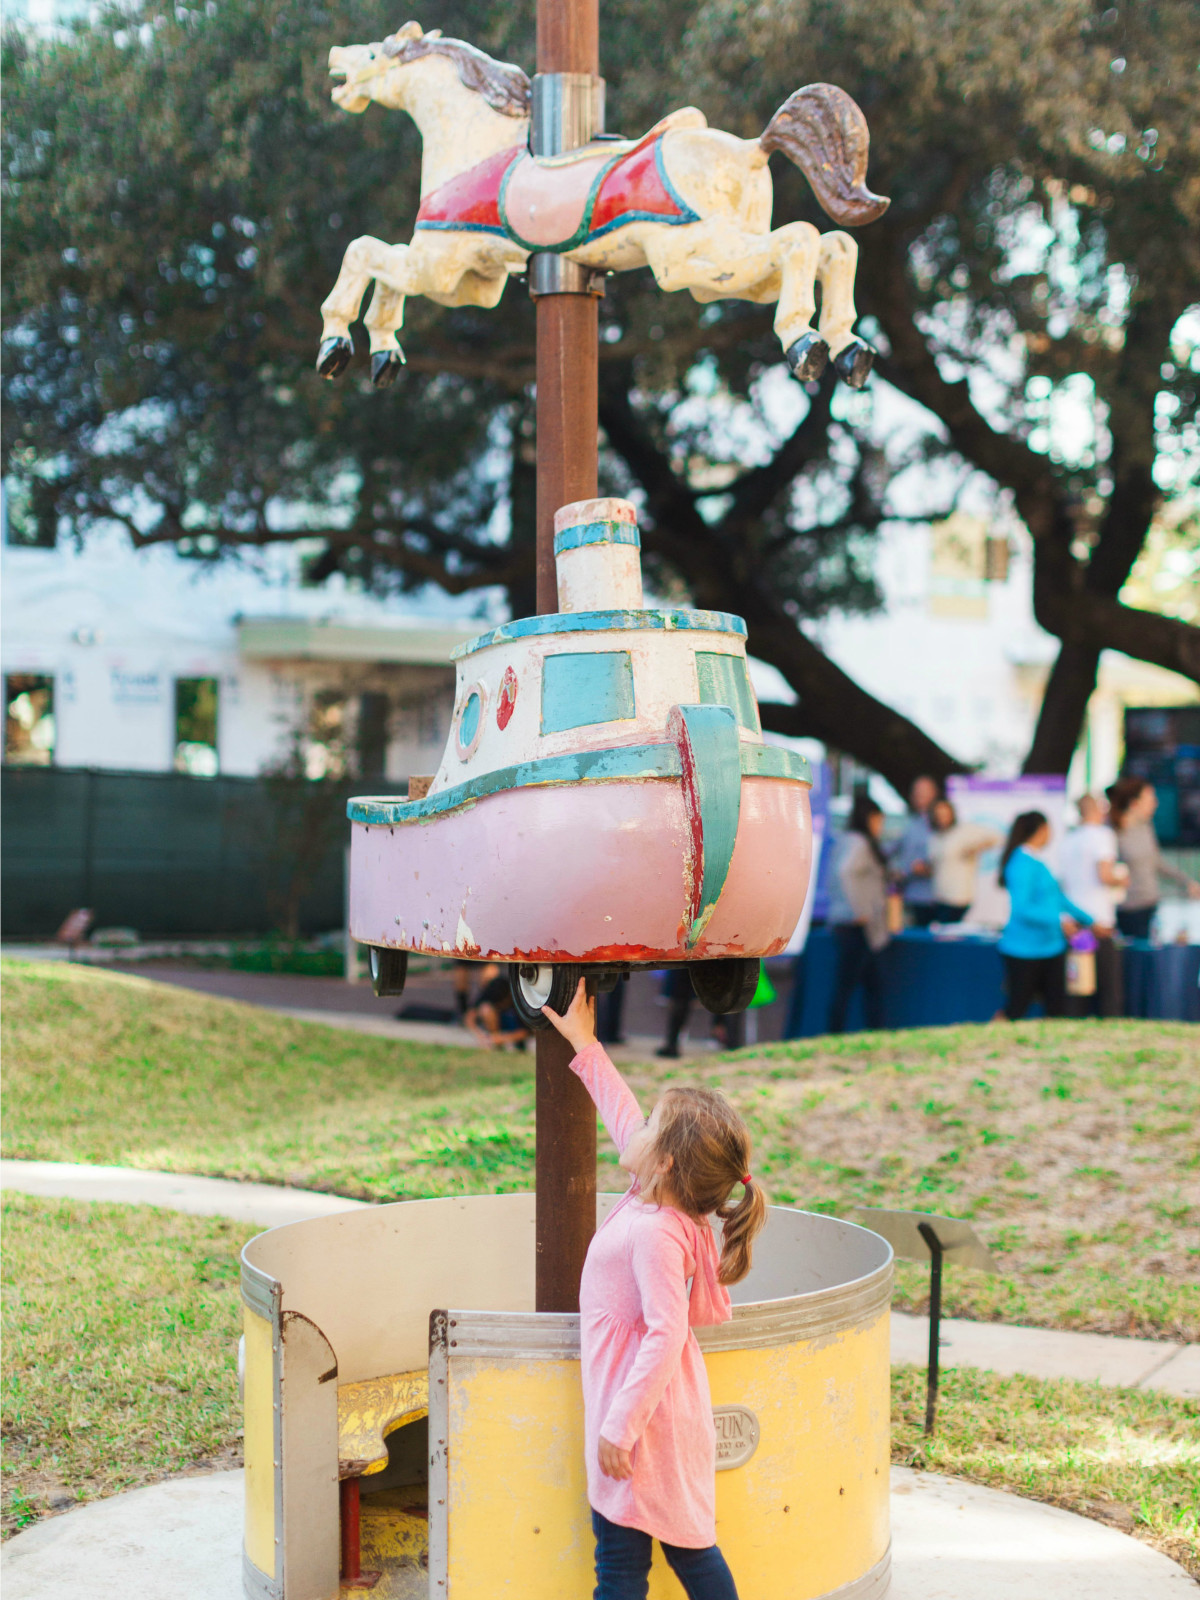 Little girl pointing at a carousel sculpture